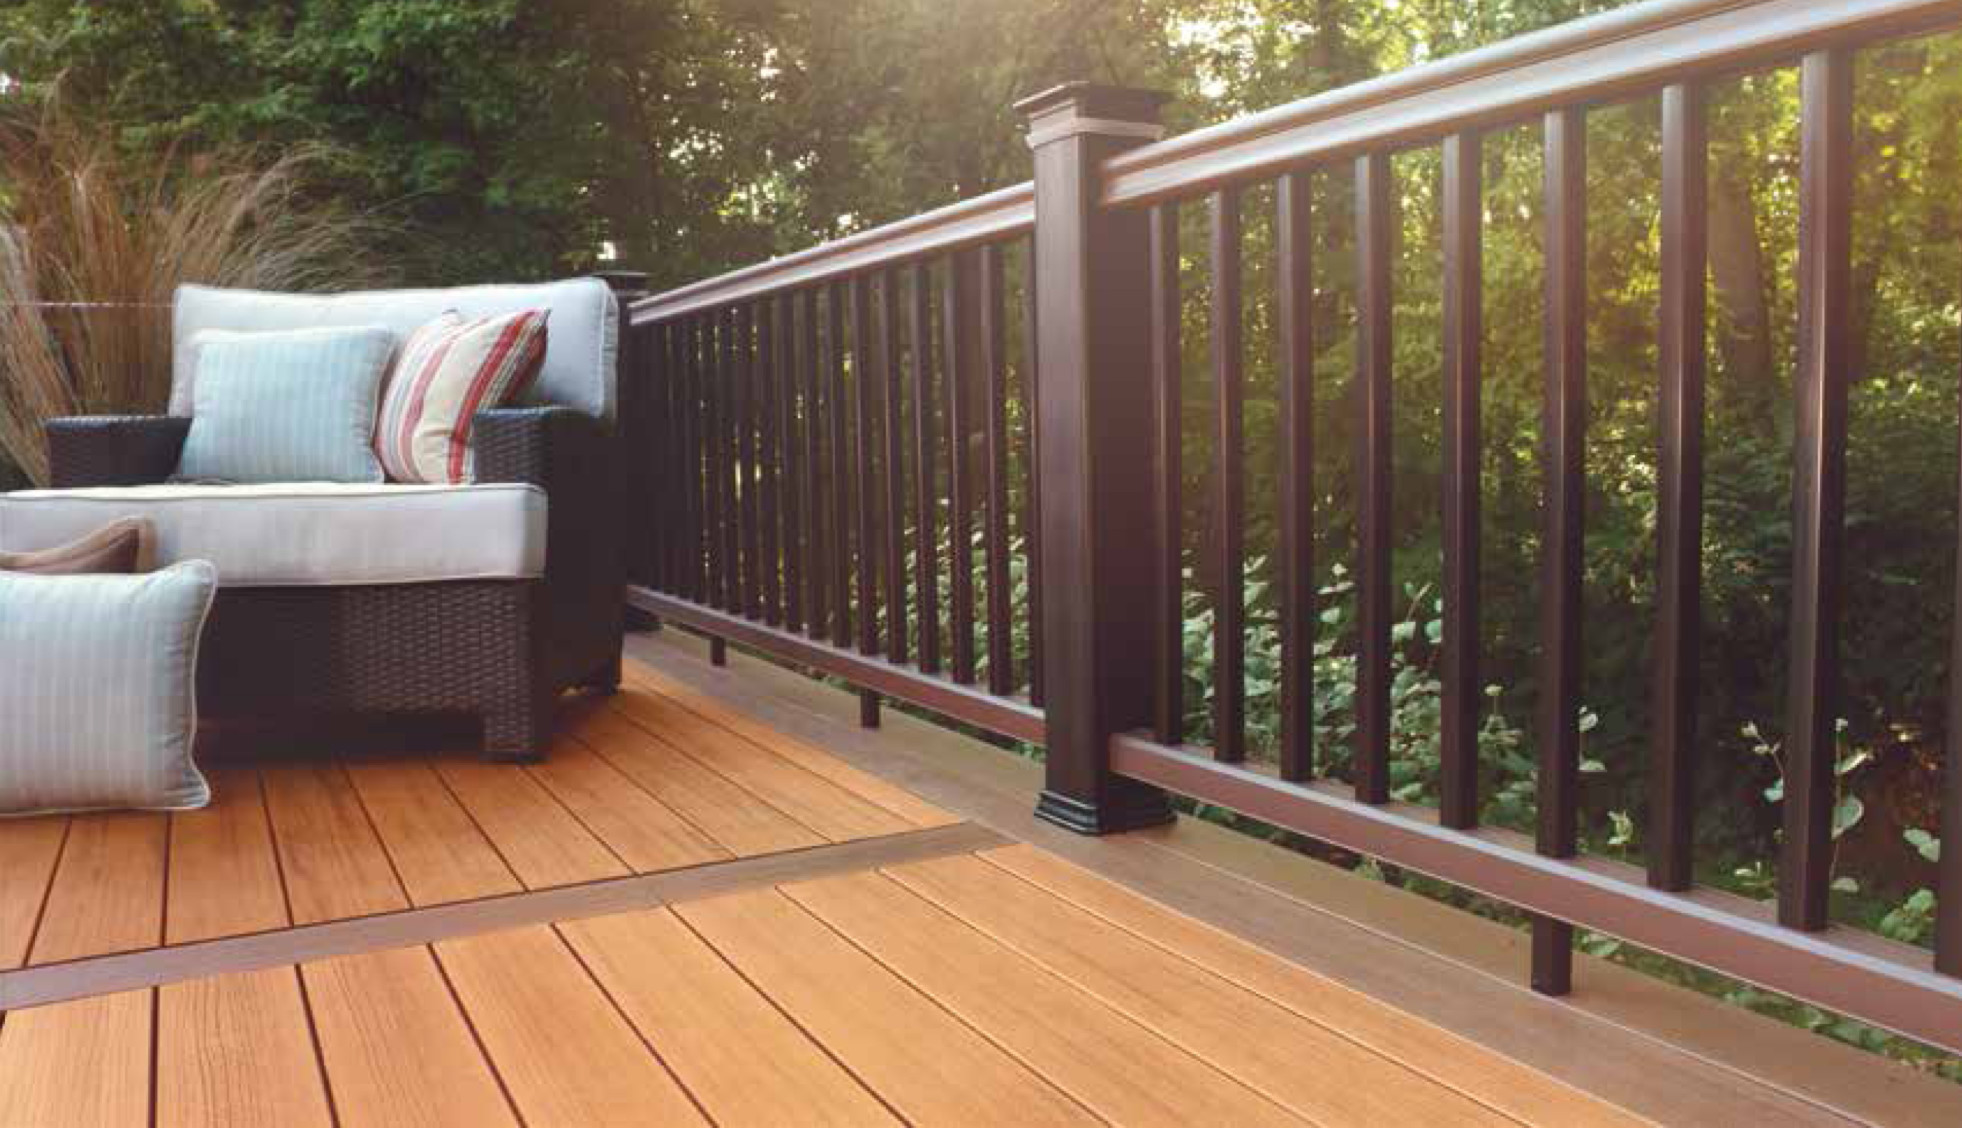 ADTG-TimberTech Tropical Decking Collection in Teak